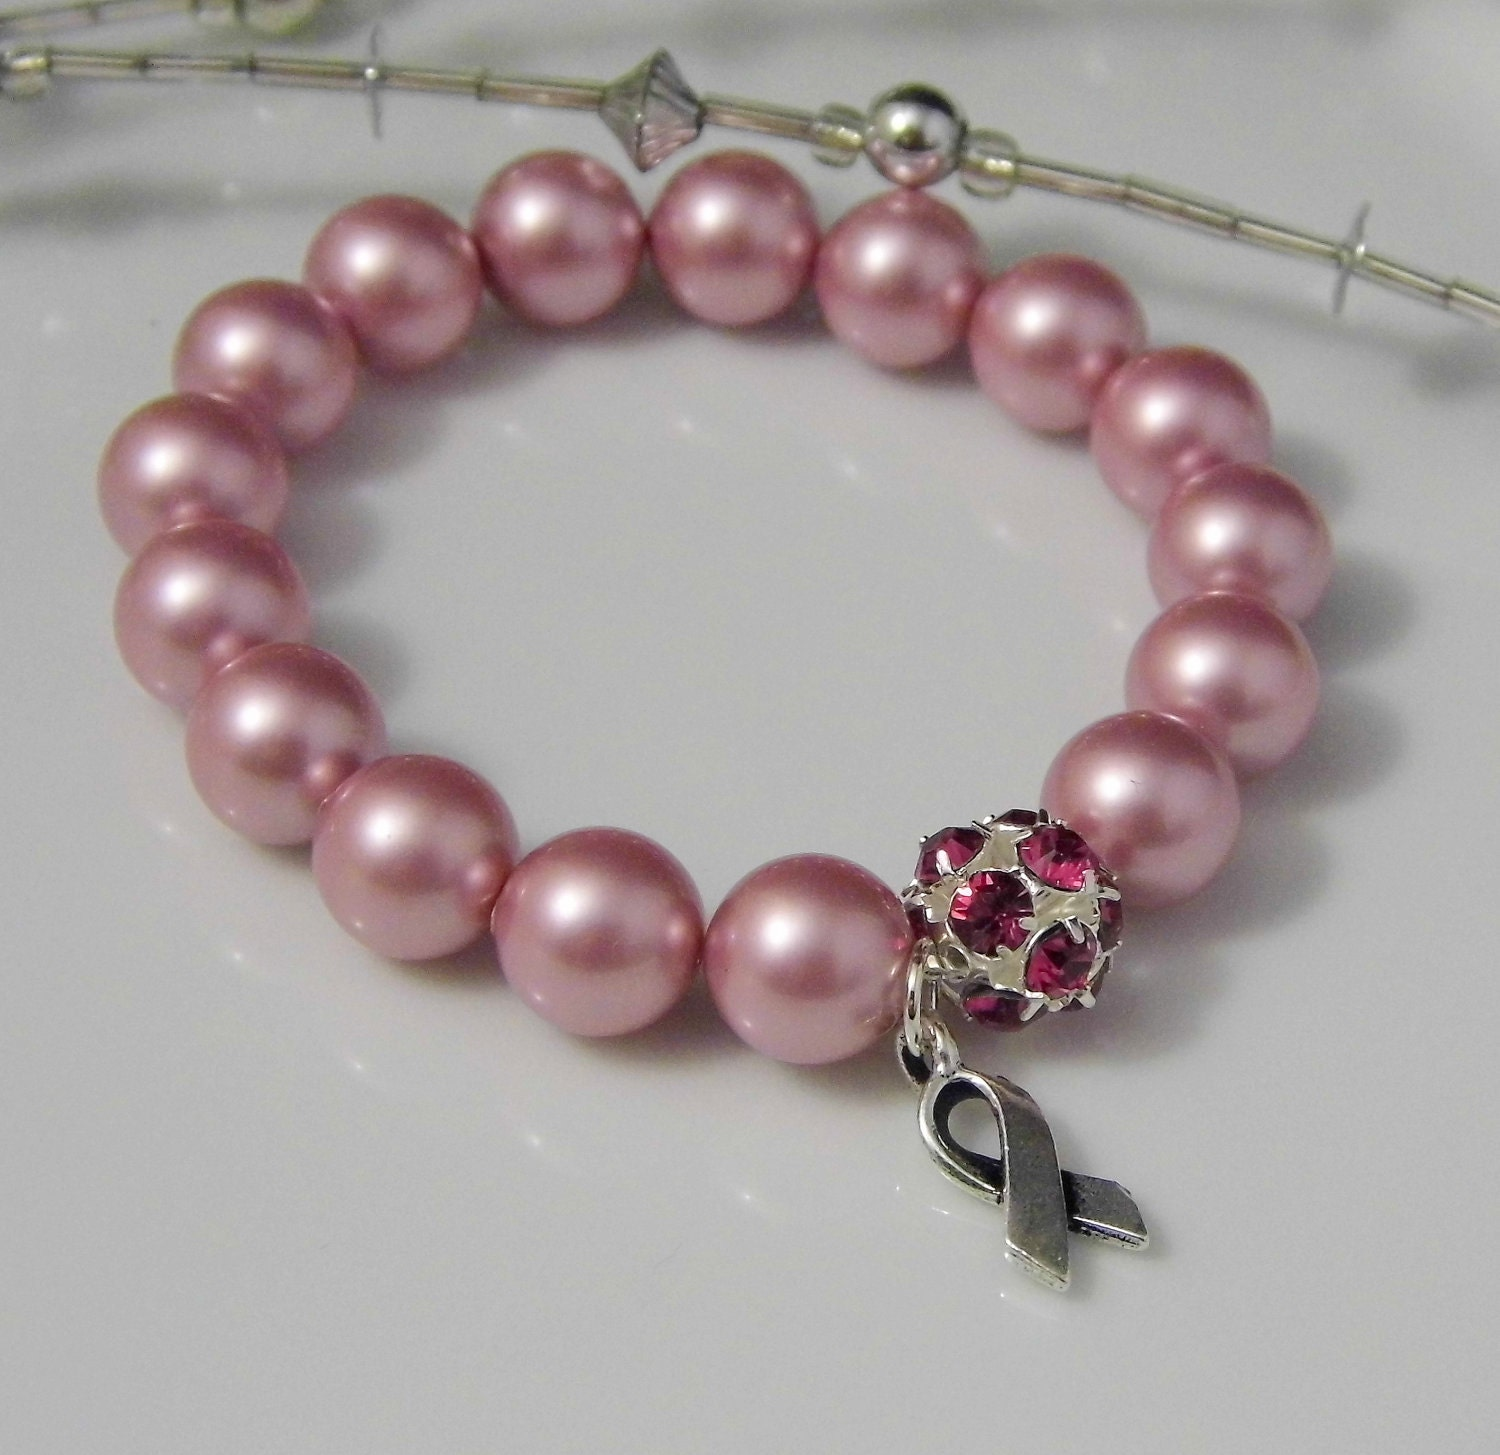 Breast Cancer Bracelet- Pink Pearls, Silver Rhinestone Ball and Ribbon Charm